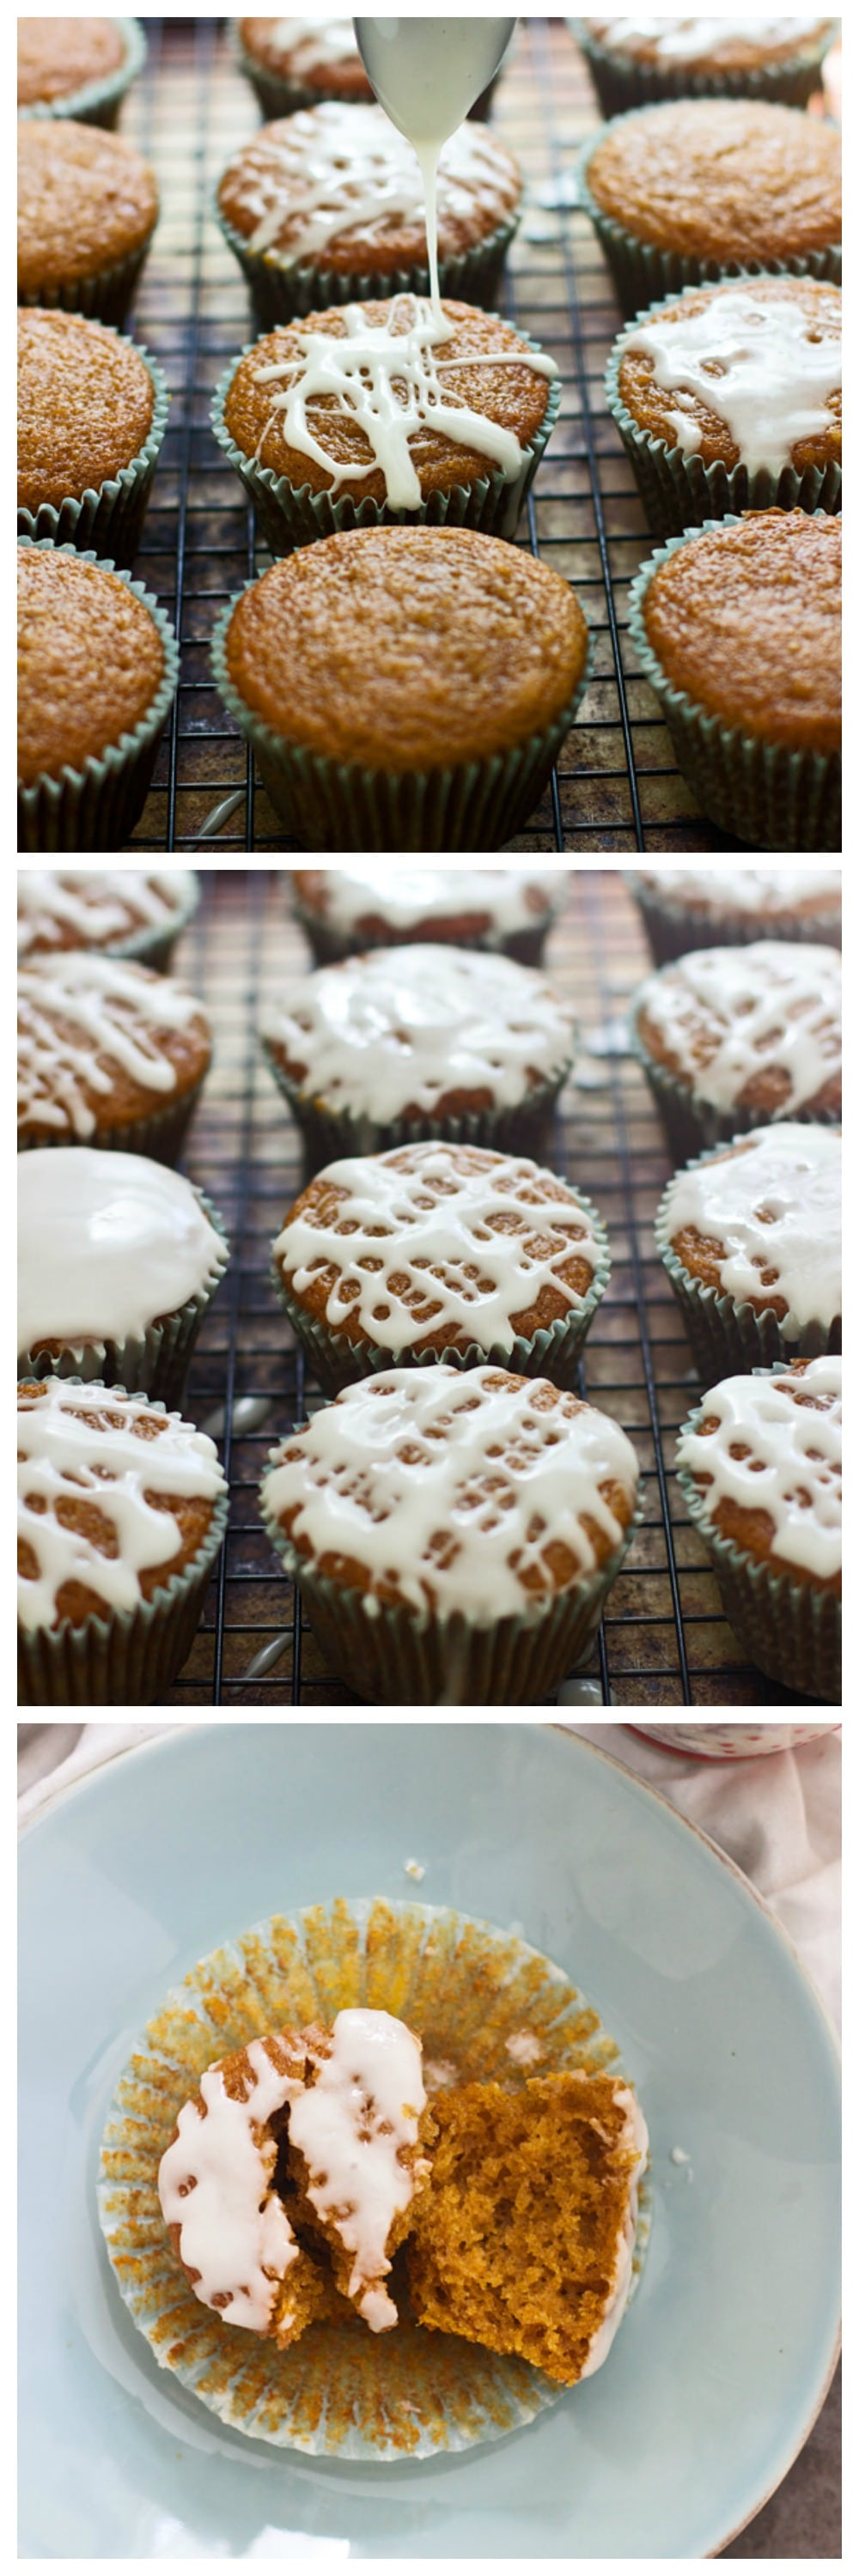 The BEST Apple Cider Pumpkin Muffins with Apple Cider Glaze - One bowl, endlessly moist and SO GOOD!